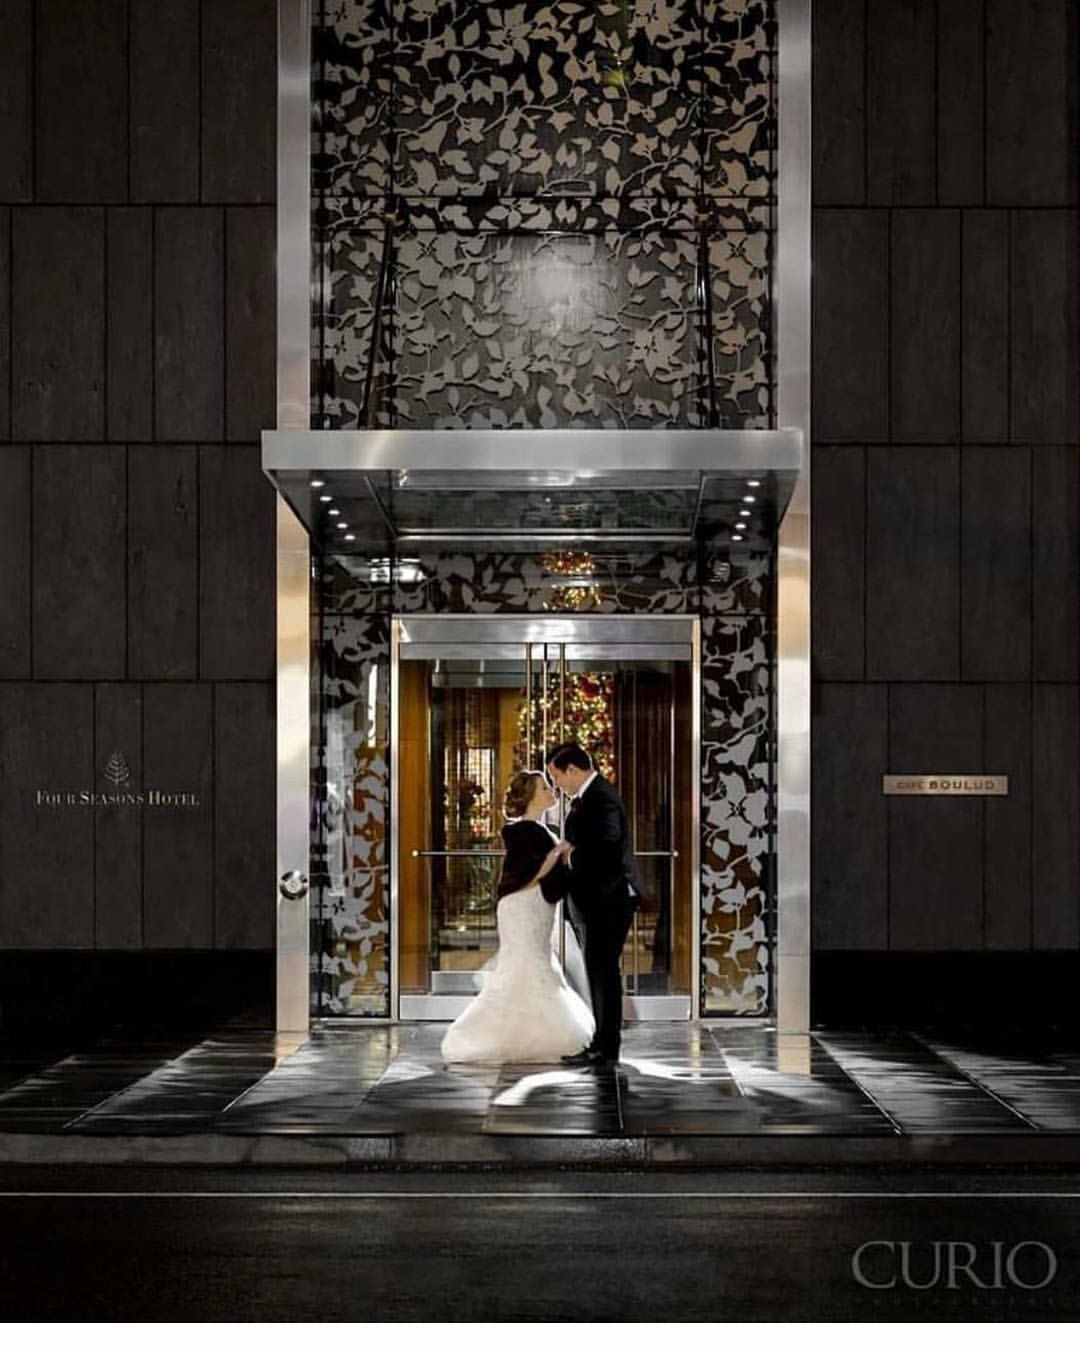 New Years Eve Wedding at the Four Seasons Hotel Toronto 📷 credit Curio Studios